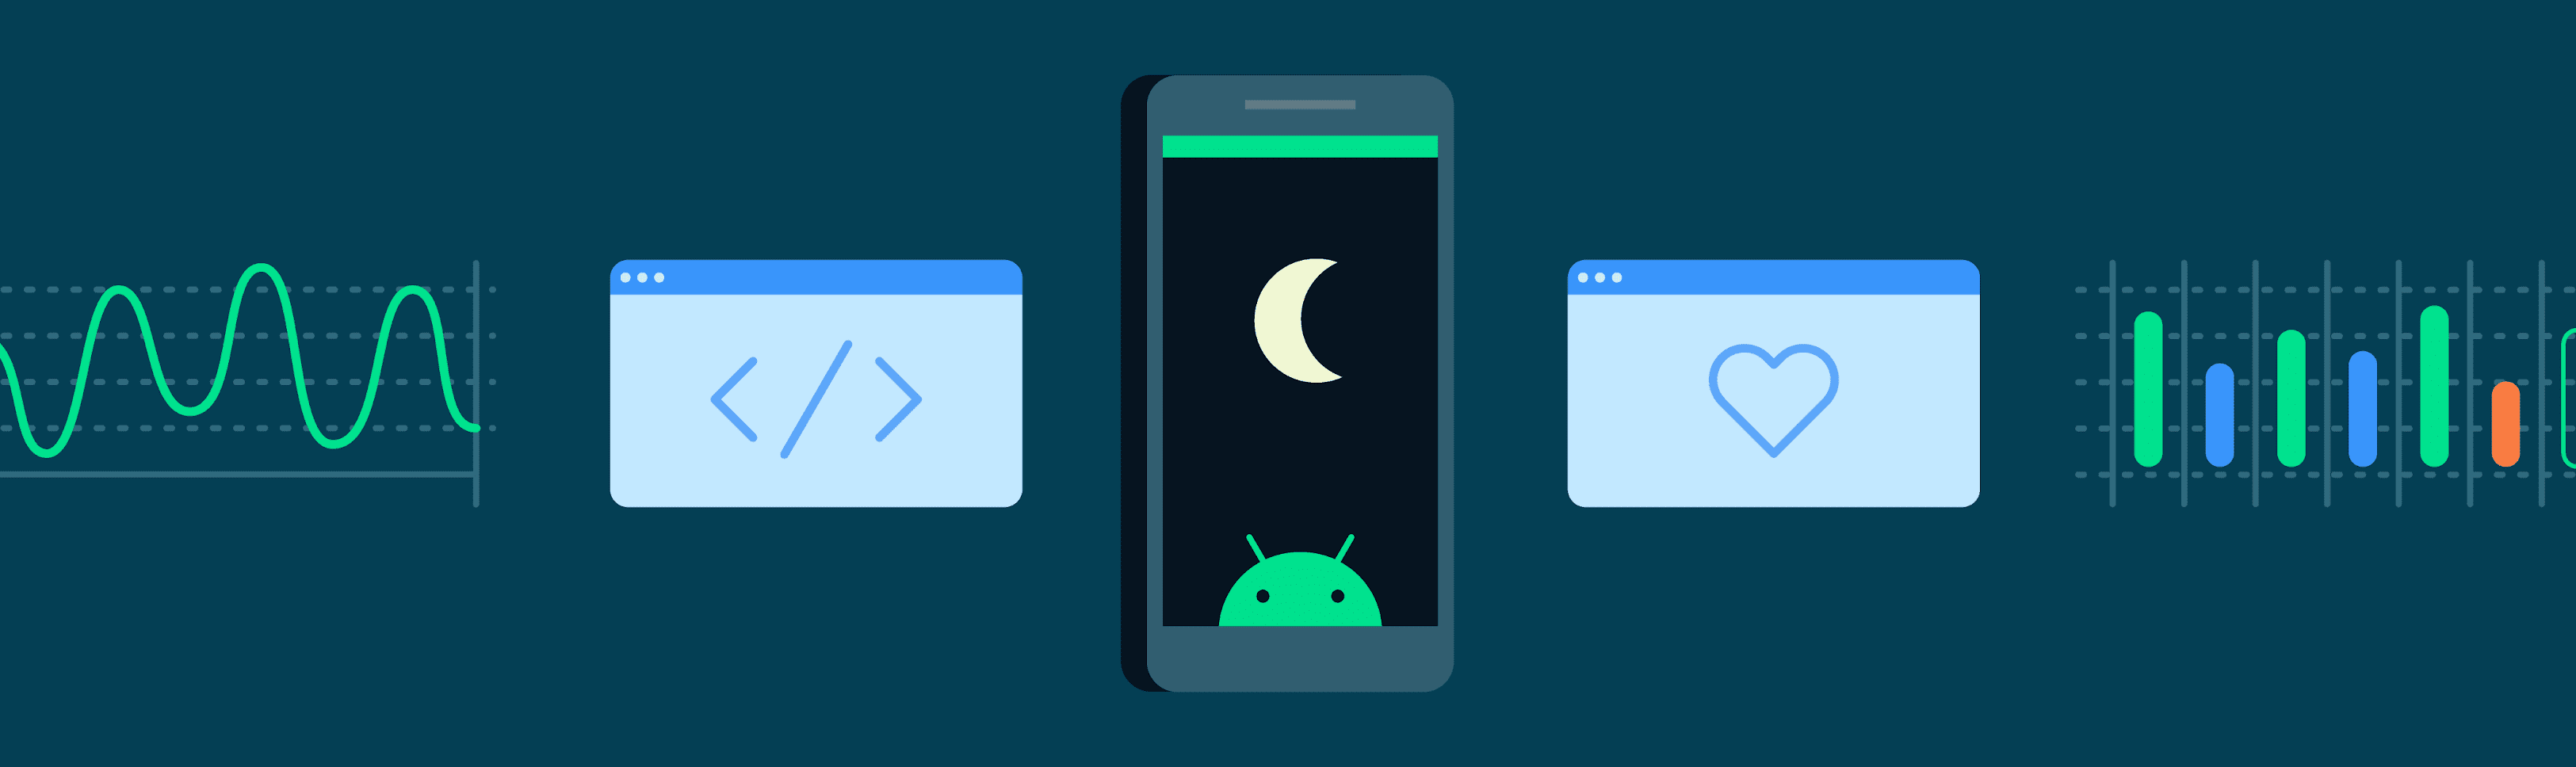 Illustration of phone with moon and Android logo on screen